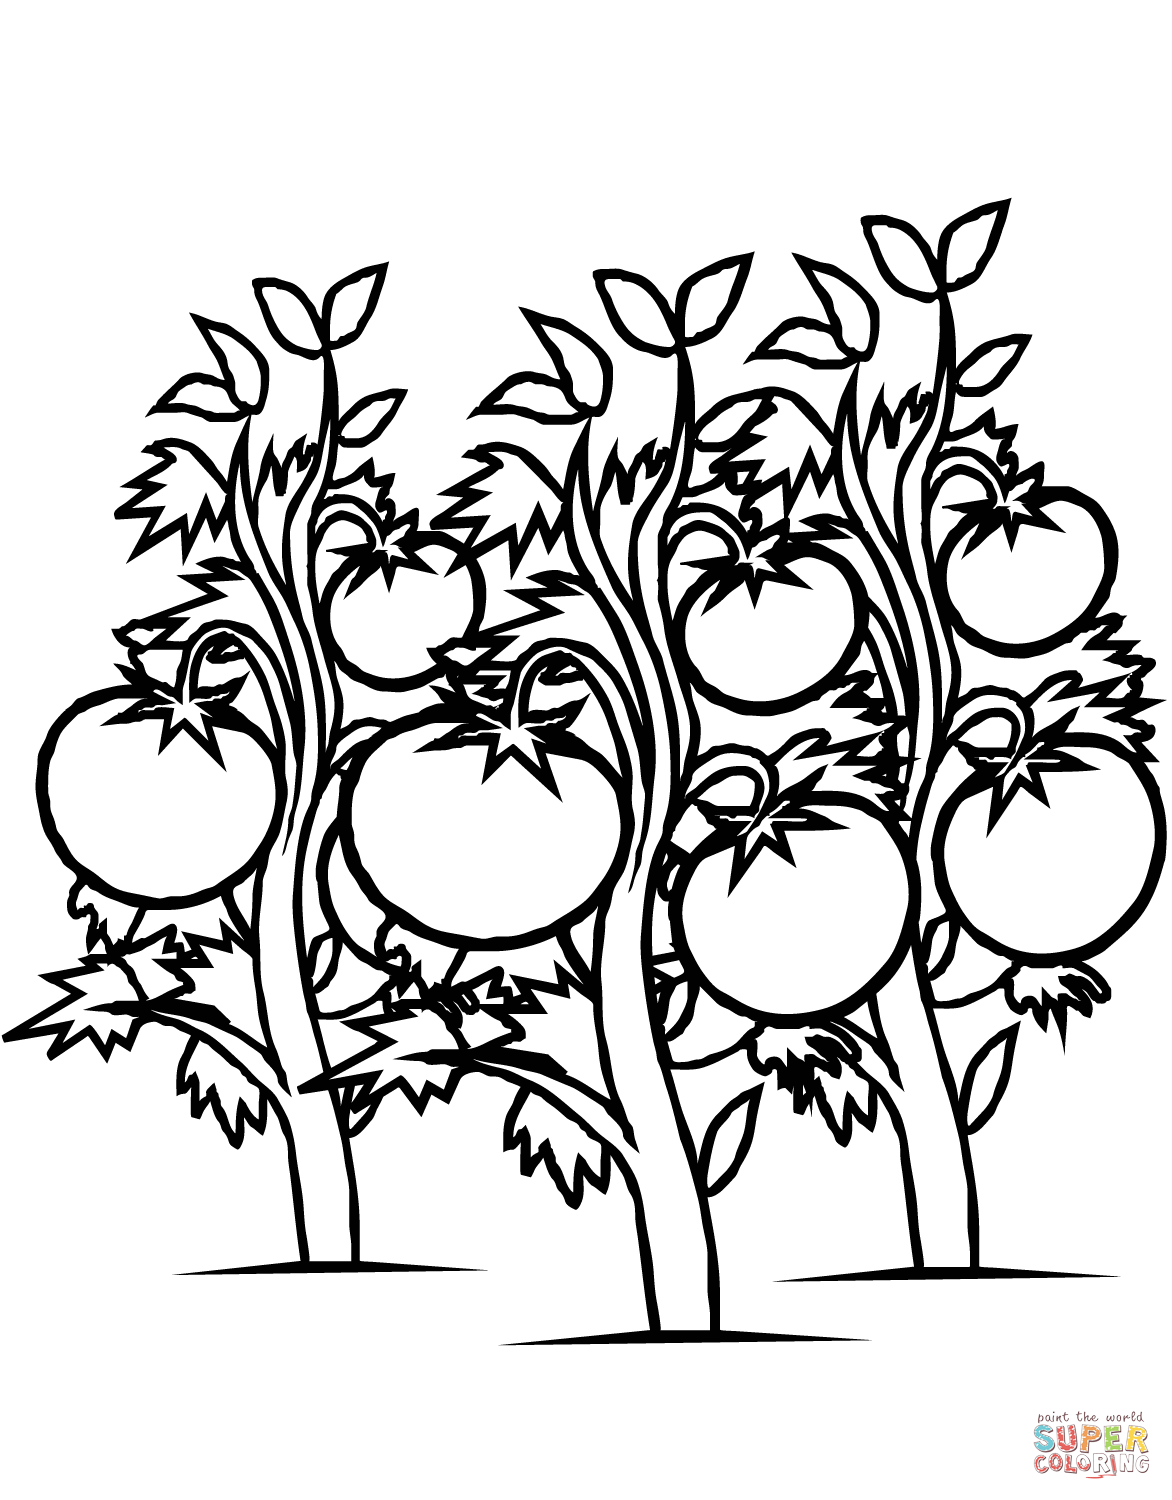 Tomato clipart eggplant plant. Tomatoes plants coloring page